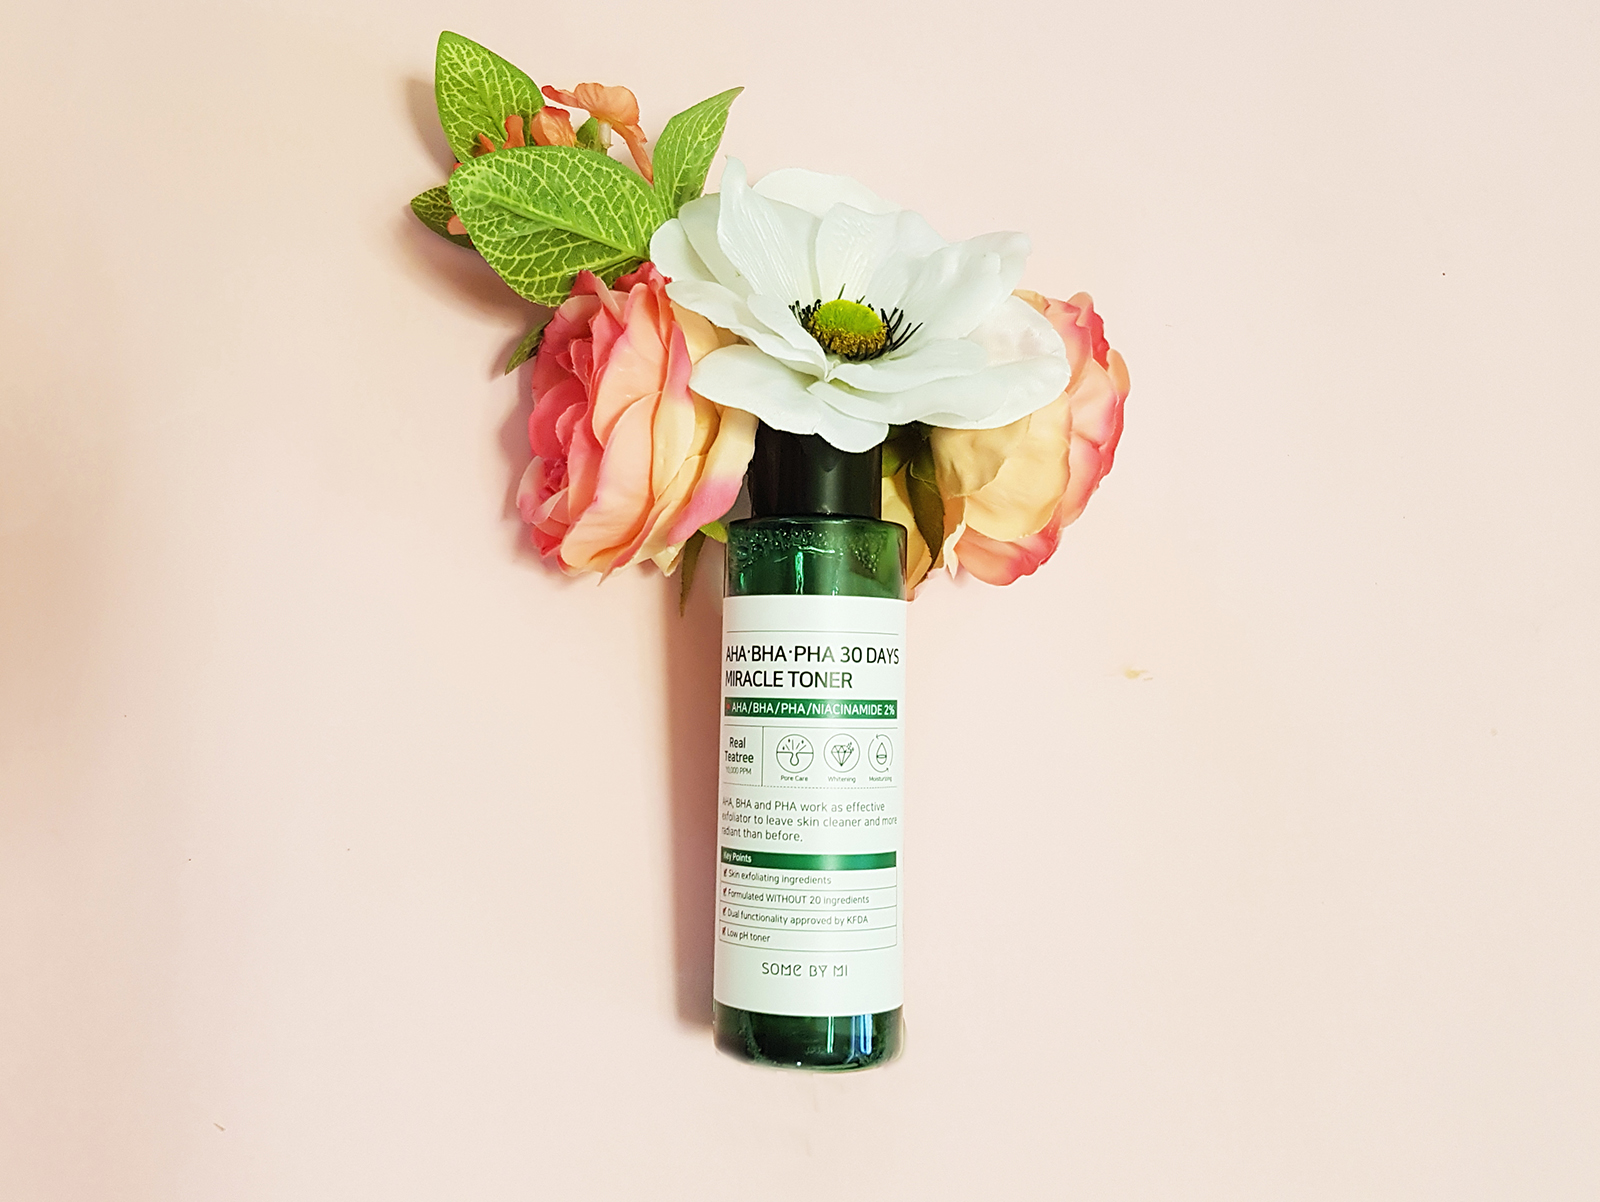 Does Some By Mi Miracle Toner Will Really Give You Flawless Skin in Just 30 Days?